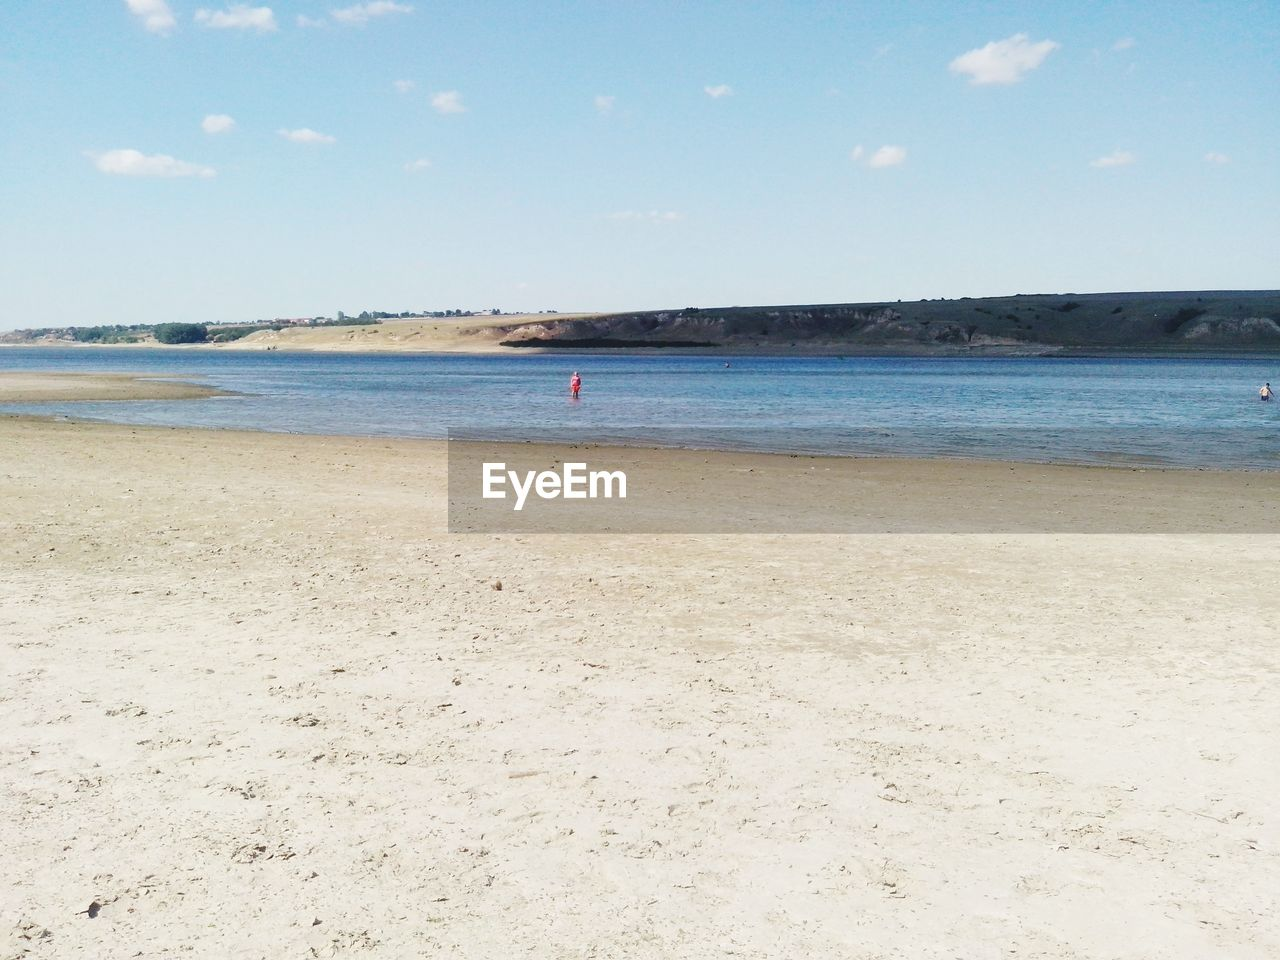 sea, beach, land, water, sky, scenics - nature, beauty in nature, sand, horizon, tranquility, tranquil scene, horizon over water, day, nature, non-urban scene, incidental people, outdoors, holiday, cloud - sky